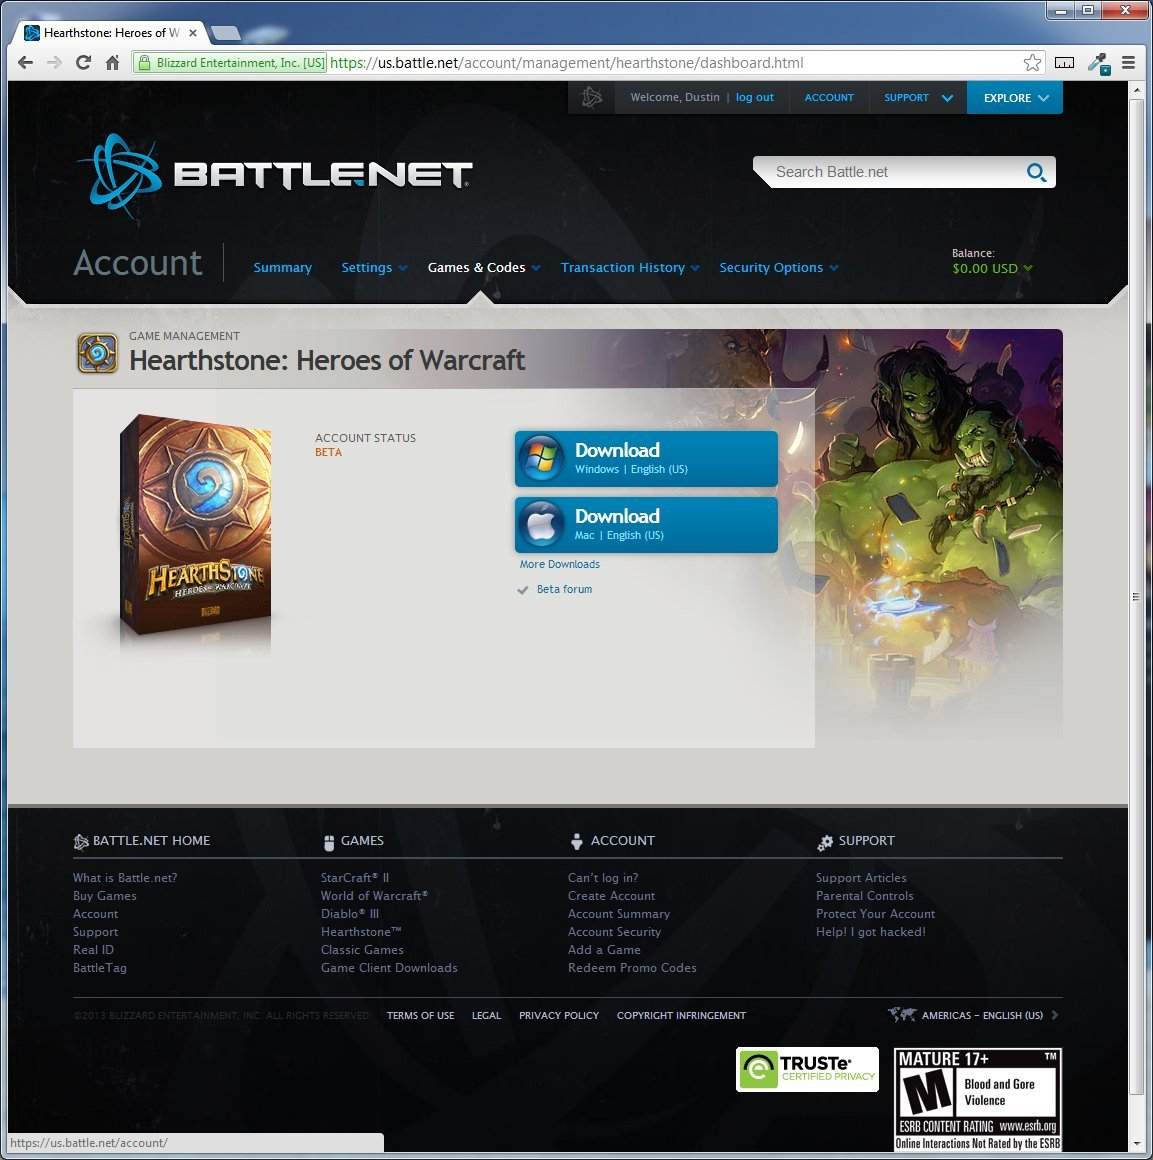 Battle.net HearthStone: Heroes of WarCraft